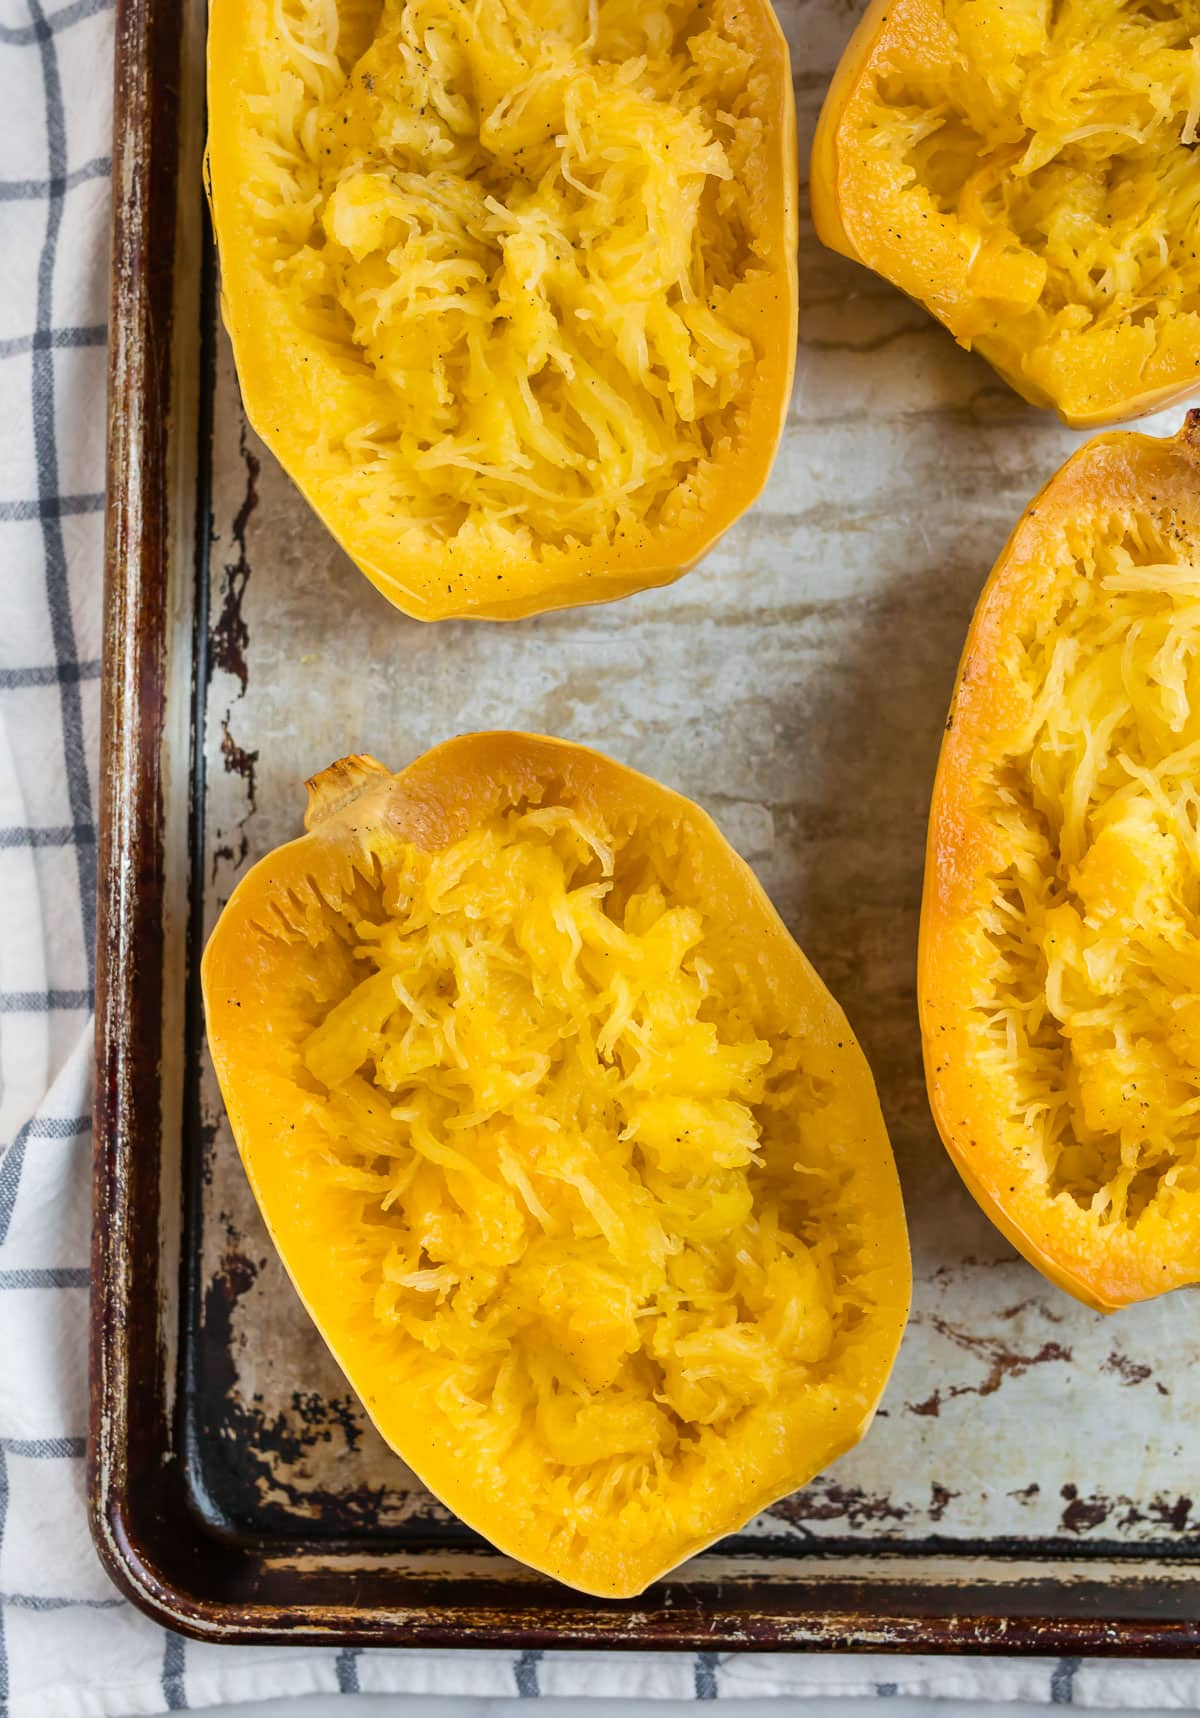 Spaghetti squash halves on a baking sheet